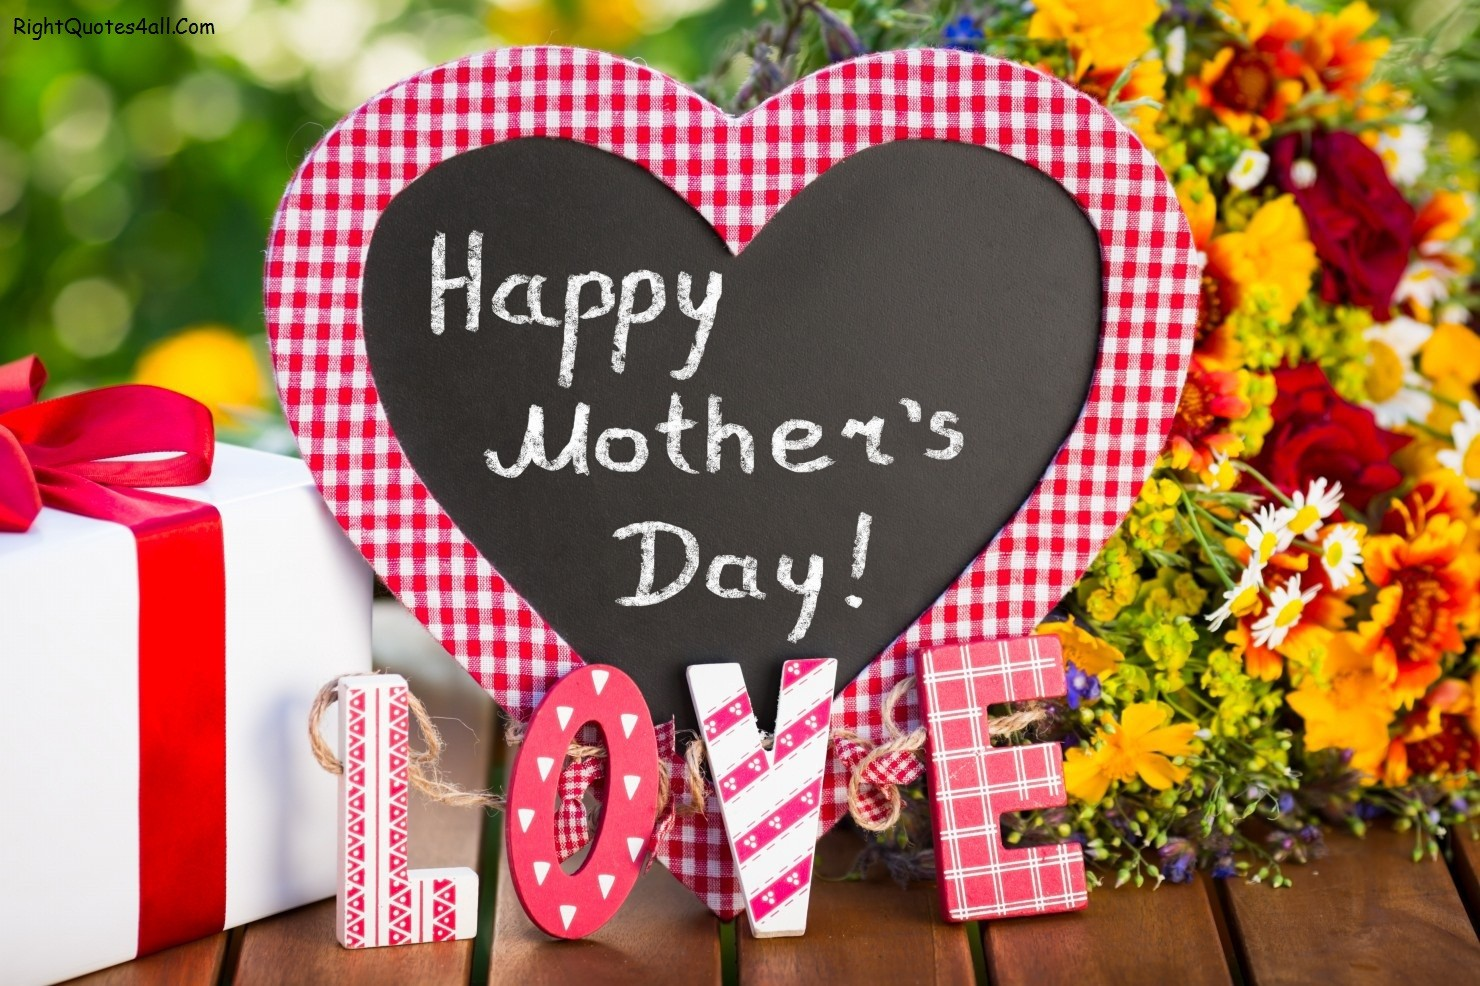 Mothers Day 2019 Card Wishes